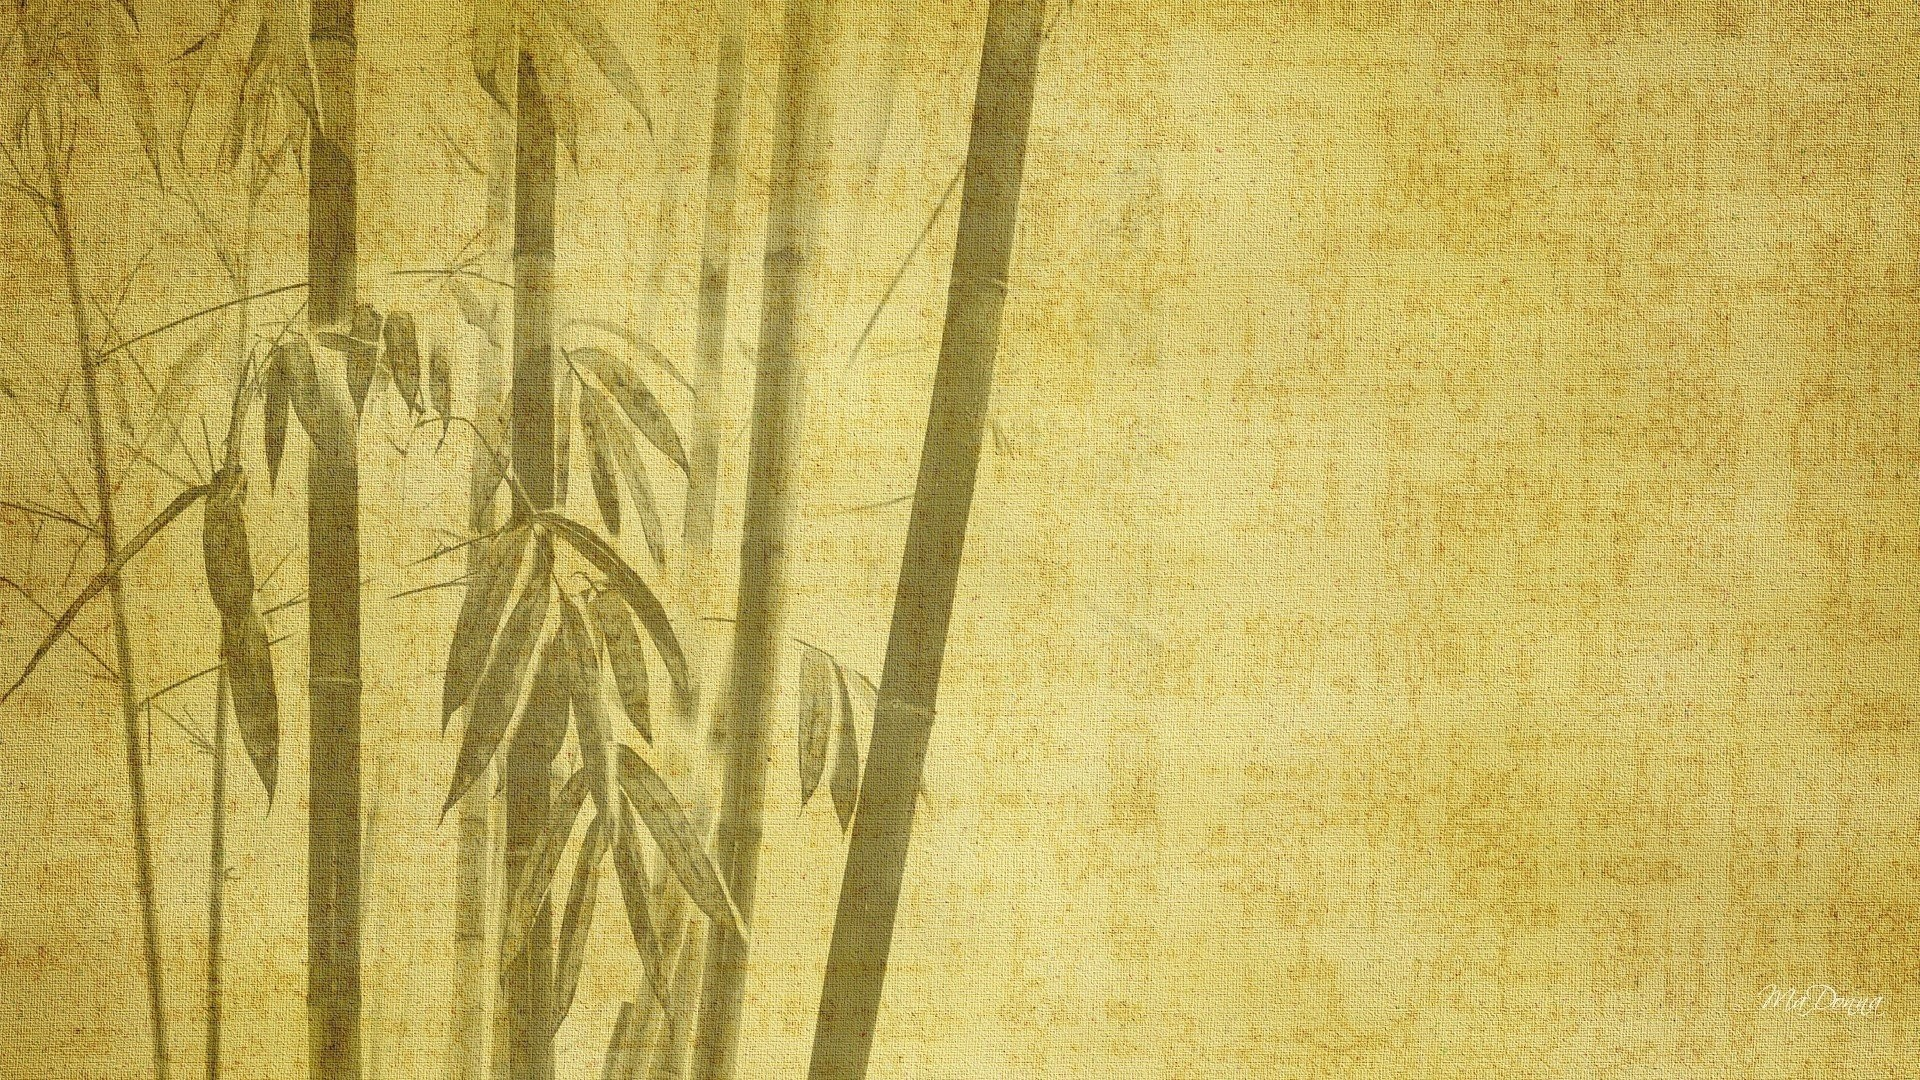 bamboo background download free